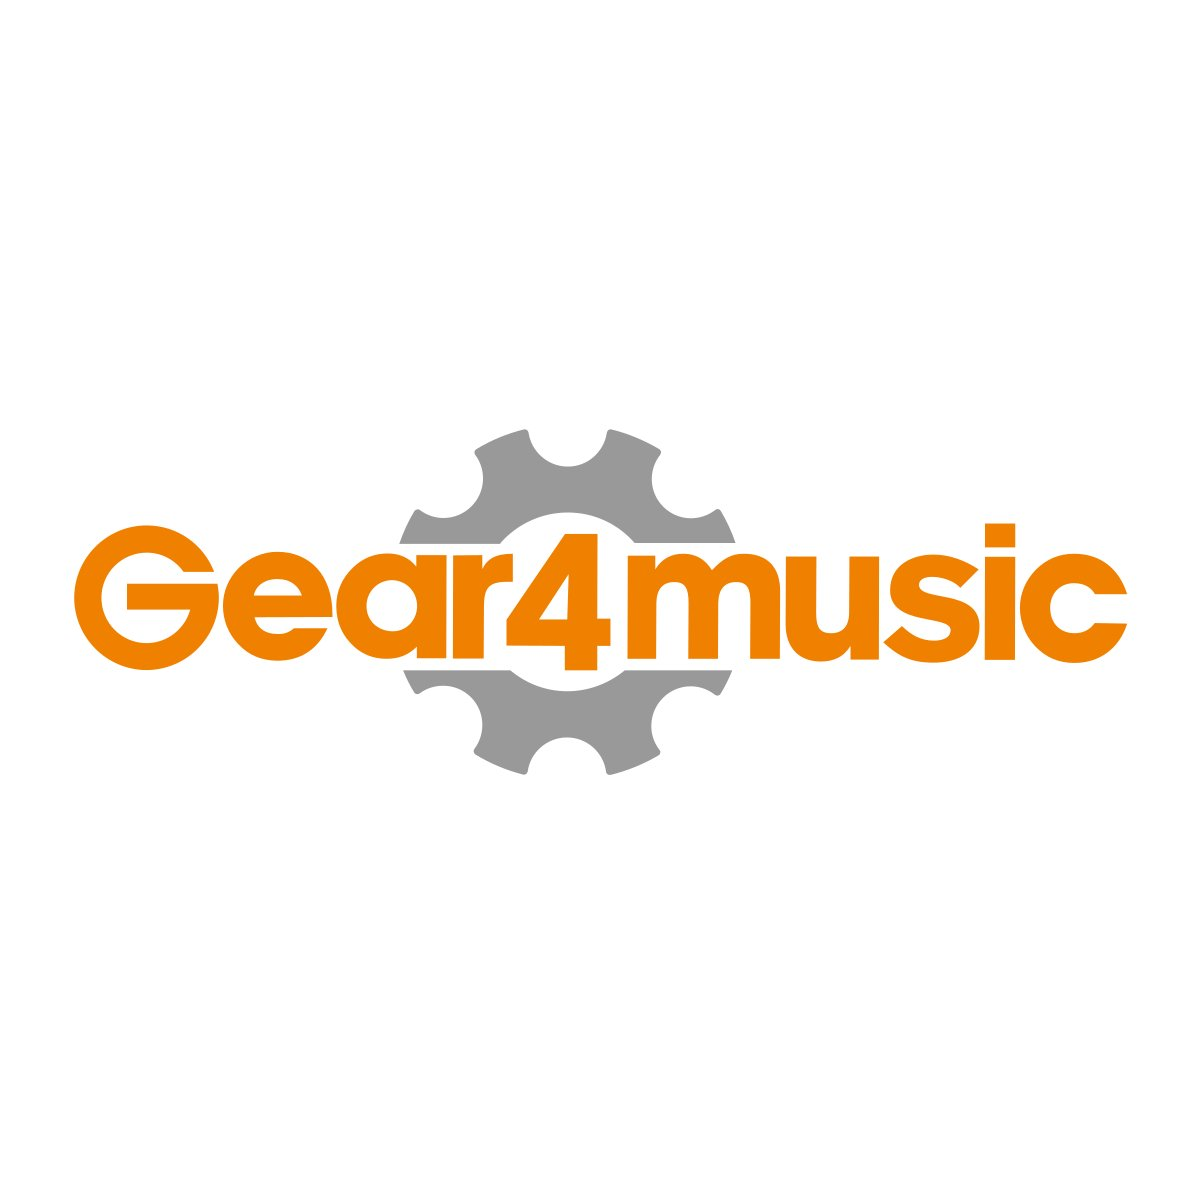 Mk 6000 Keyboard With Usb Midi By Gear4music At Wiring Devices Lebanon